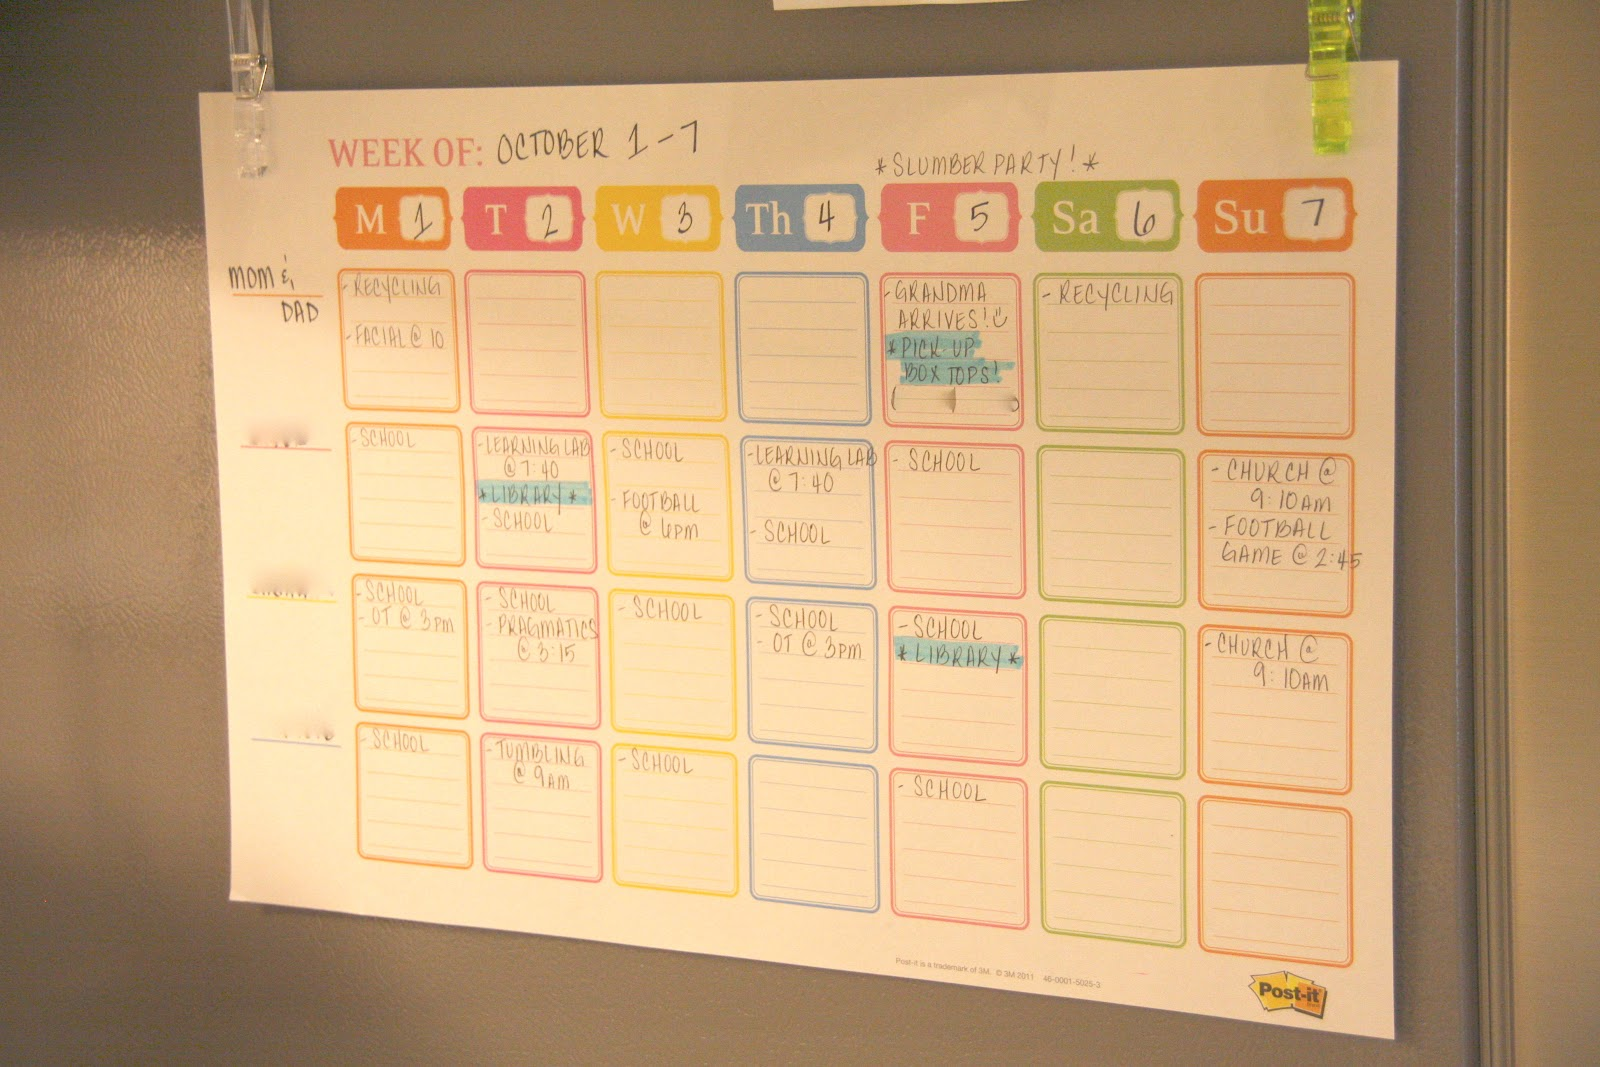 Simple Weekly Family Organizer Simply Organized - Post it note calendar template